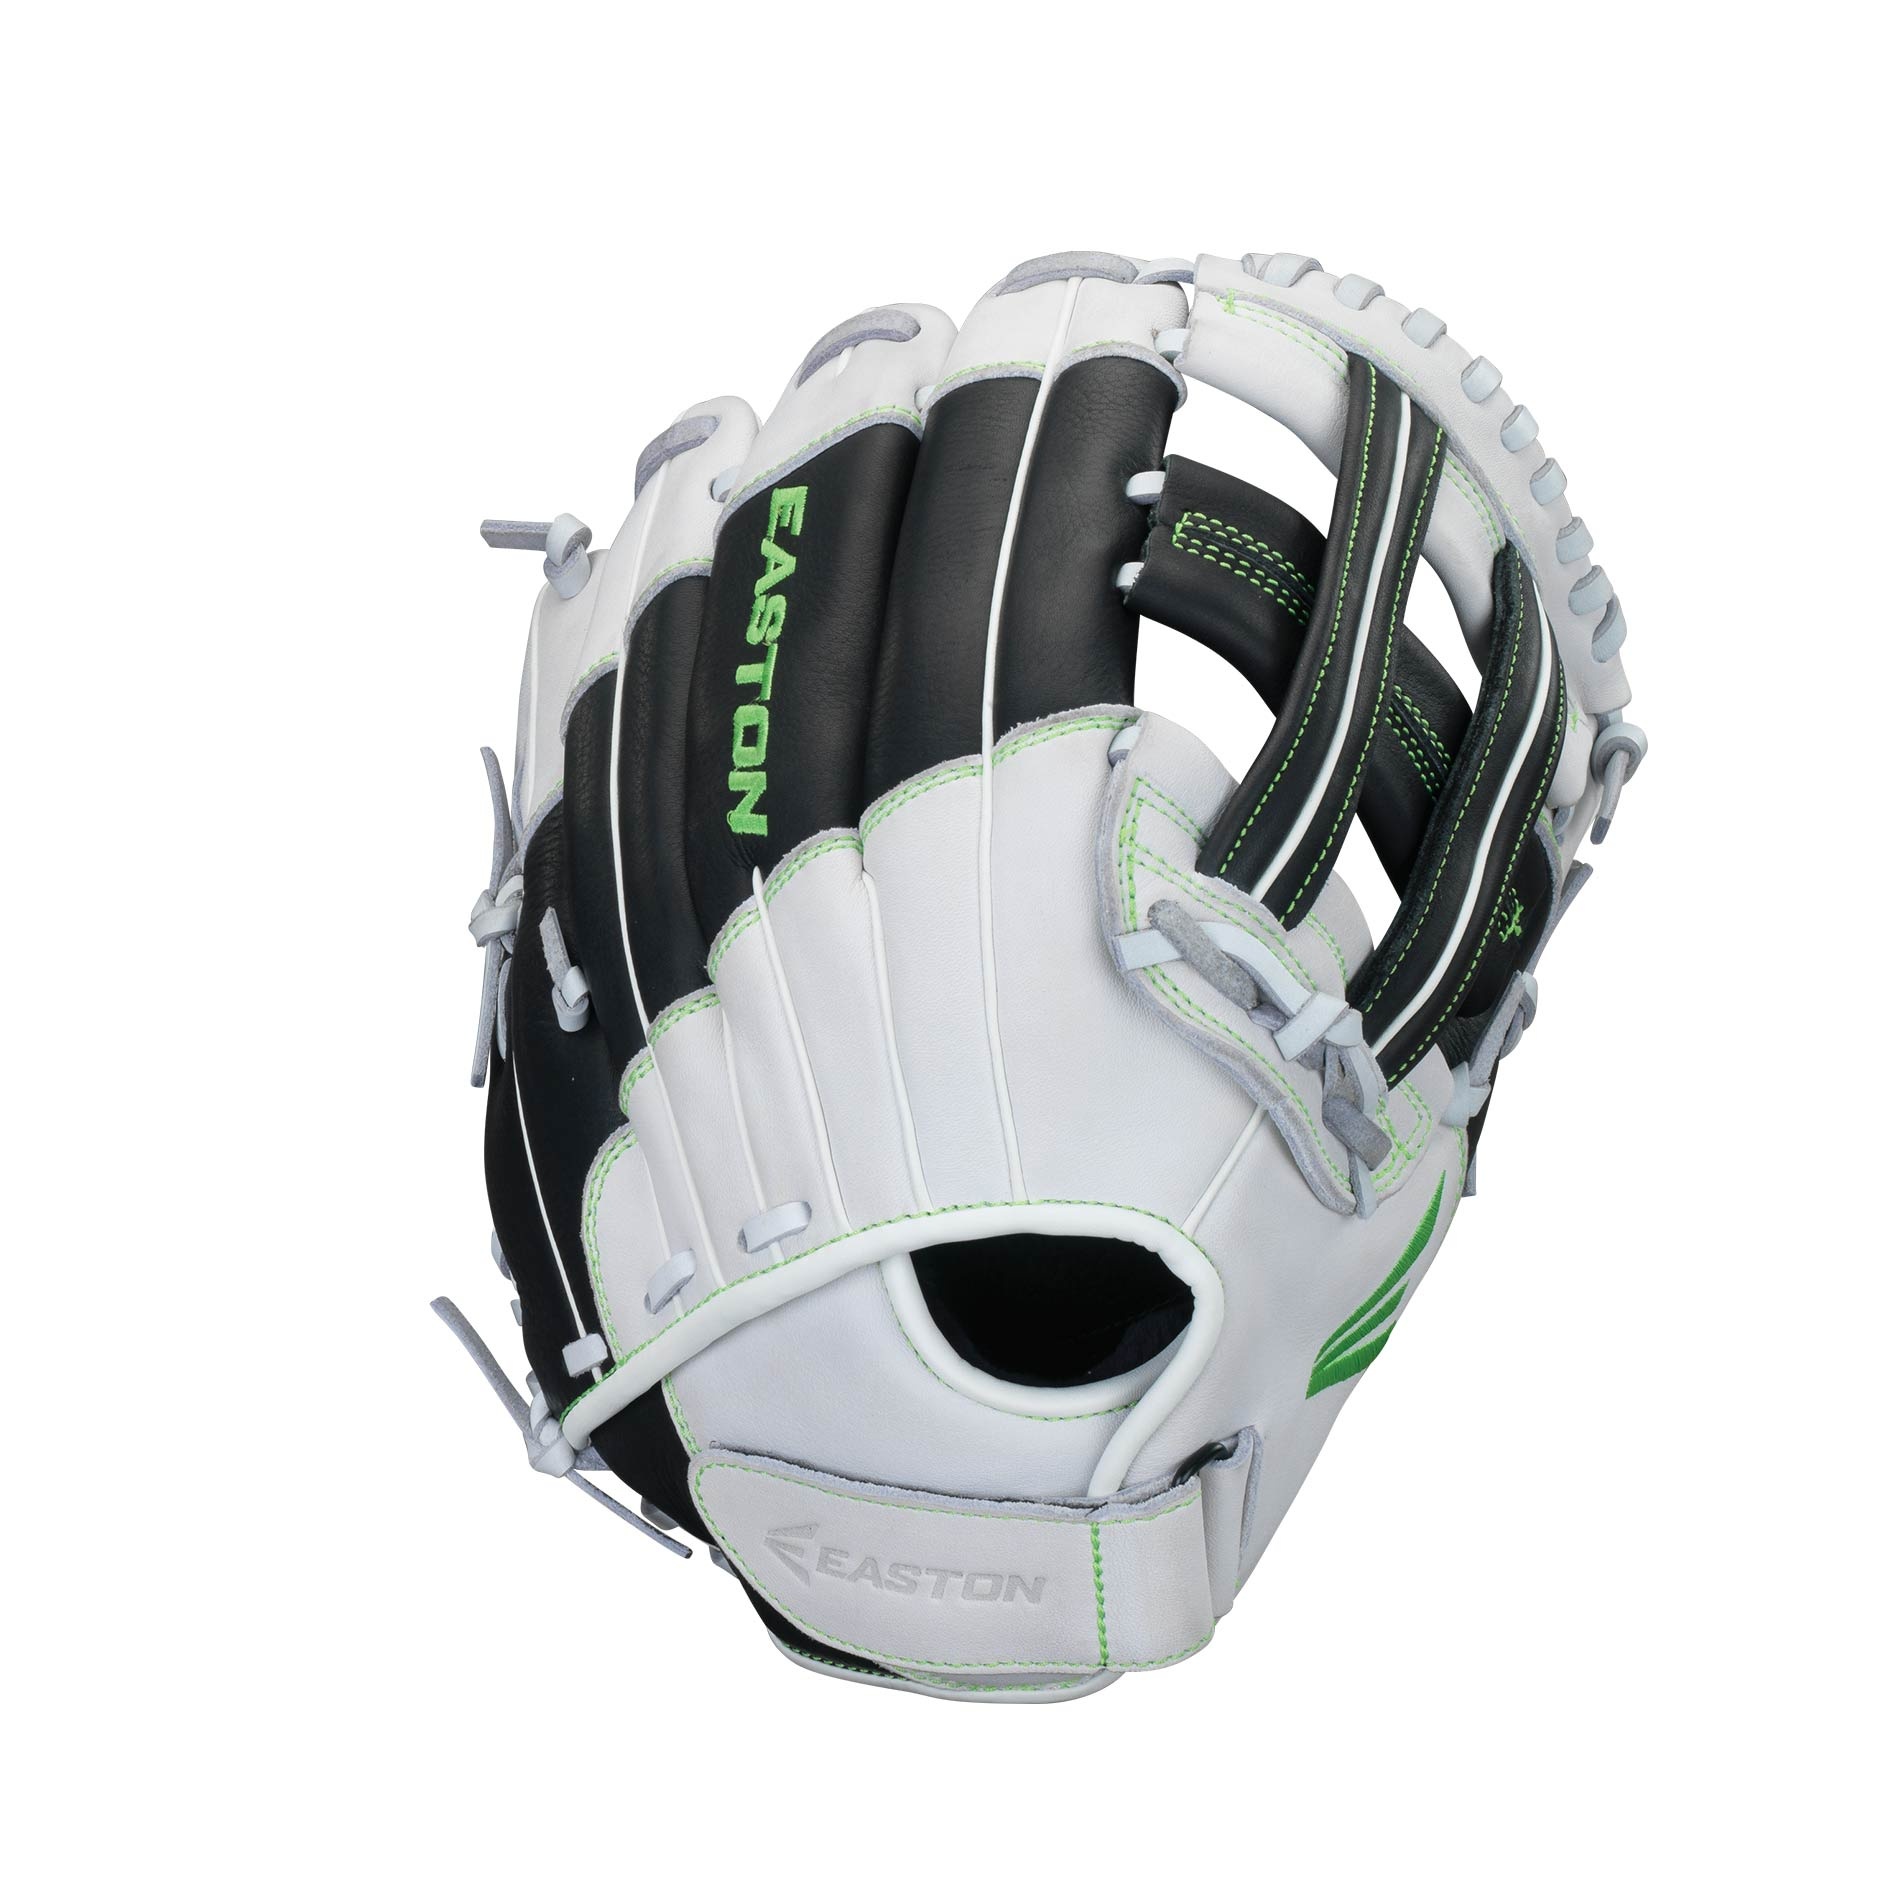 "Easton Synergy Elite Fastpitch Series 12"" Softball Glove"